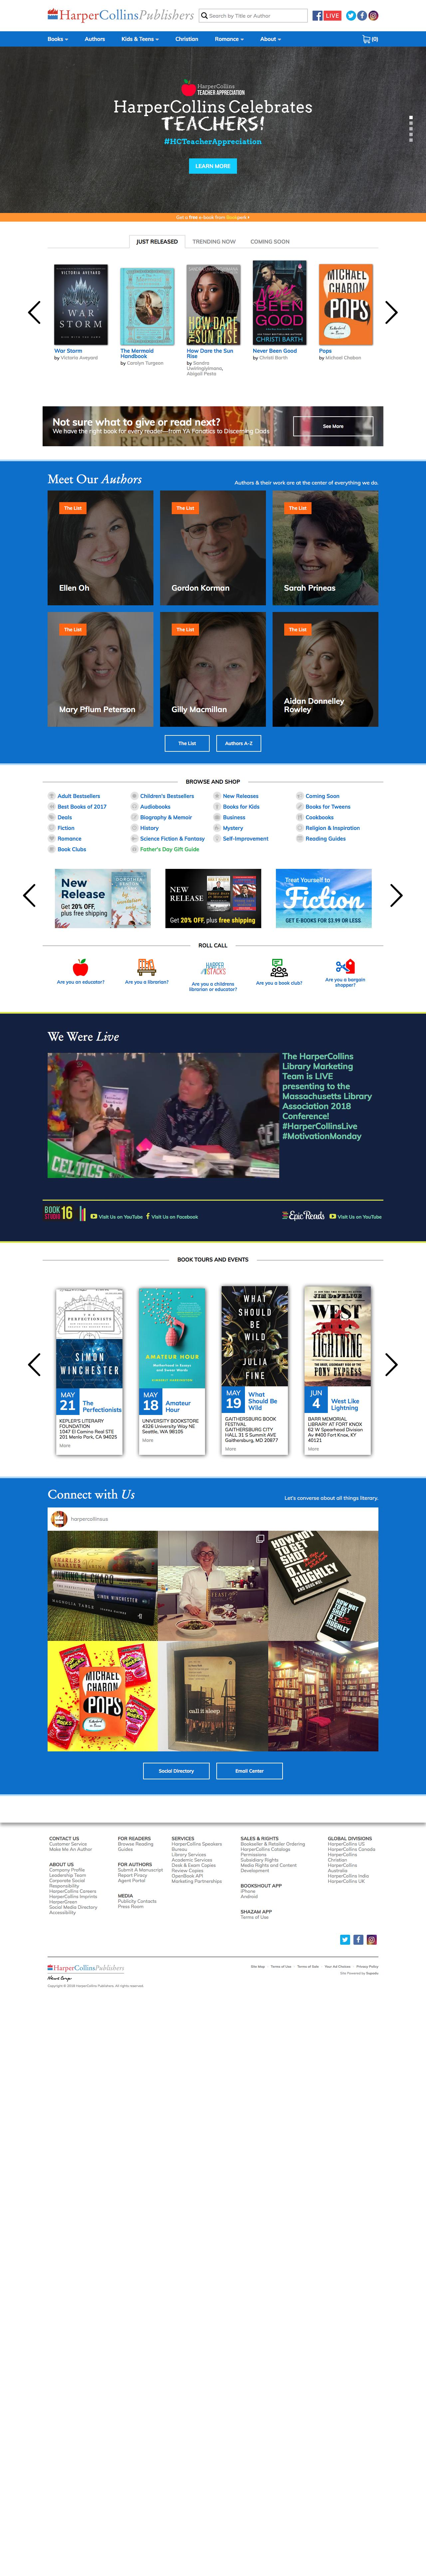 Screenshot of harpercollins.com - HarperCollins Publishers: World-Leading Book Publisher - captured May 22, 2018